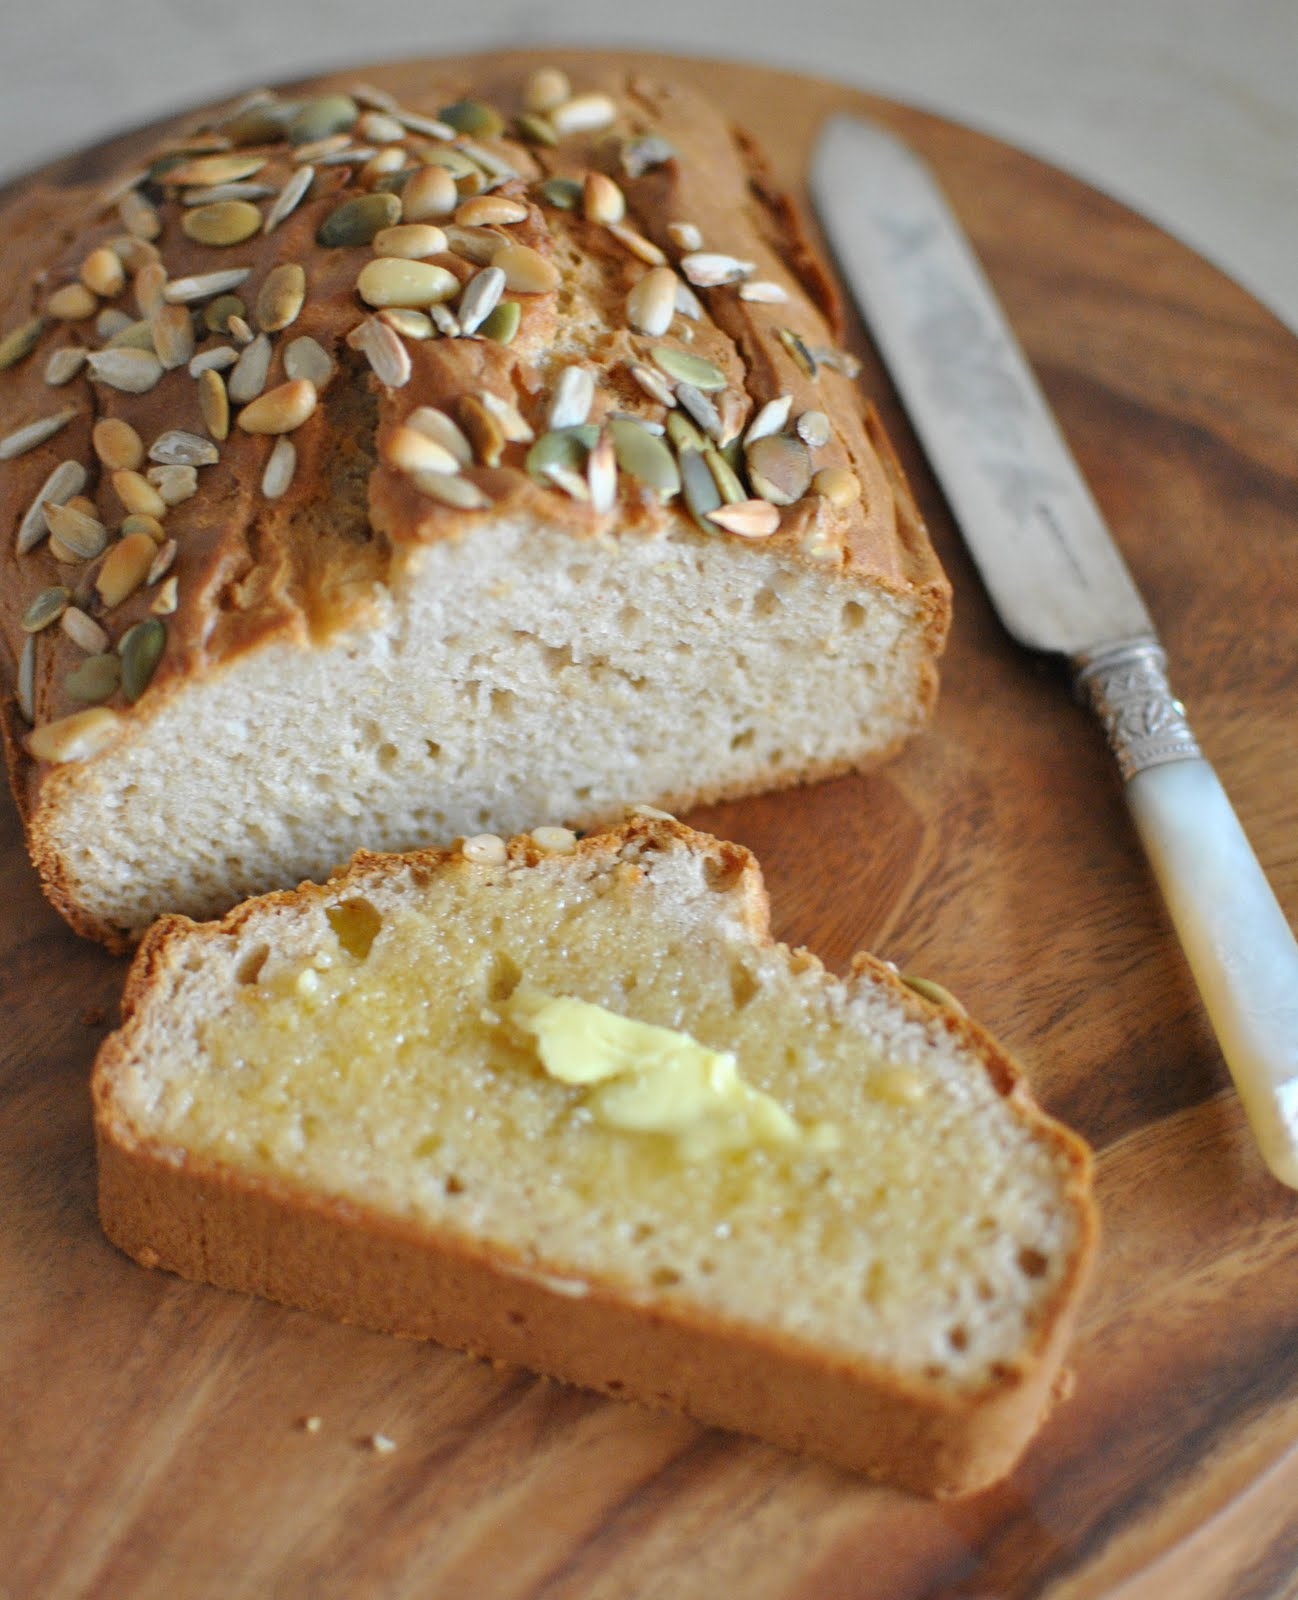 Scandi Home: Tasty Gluten Free Buckwheat Bread